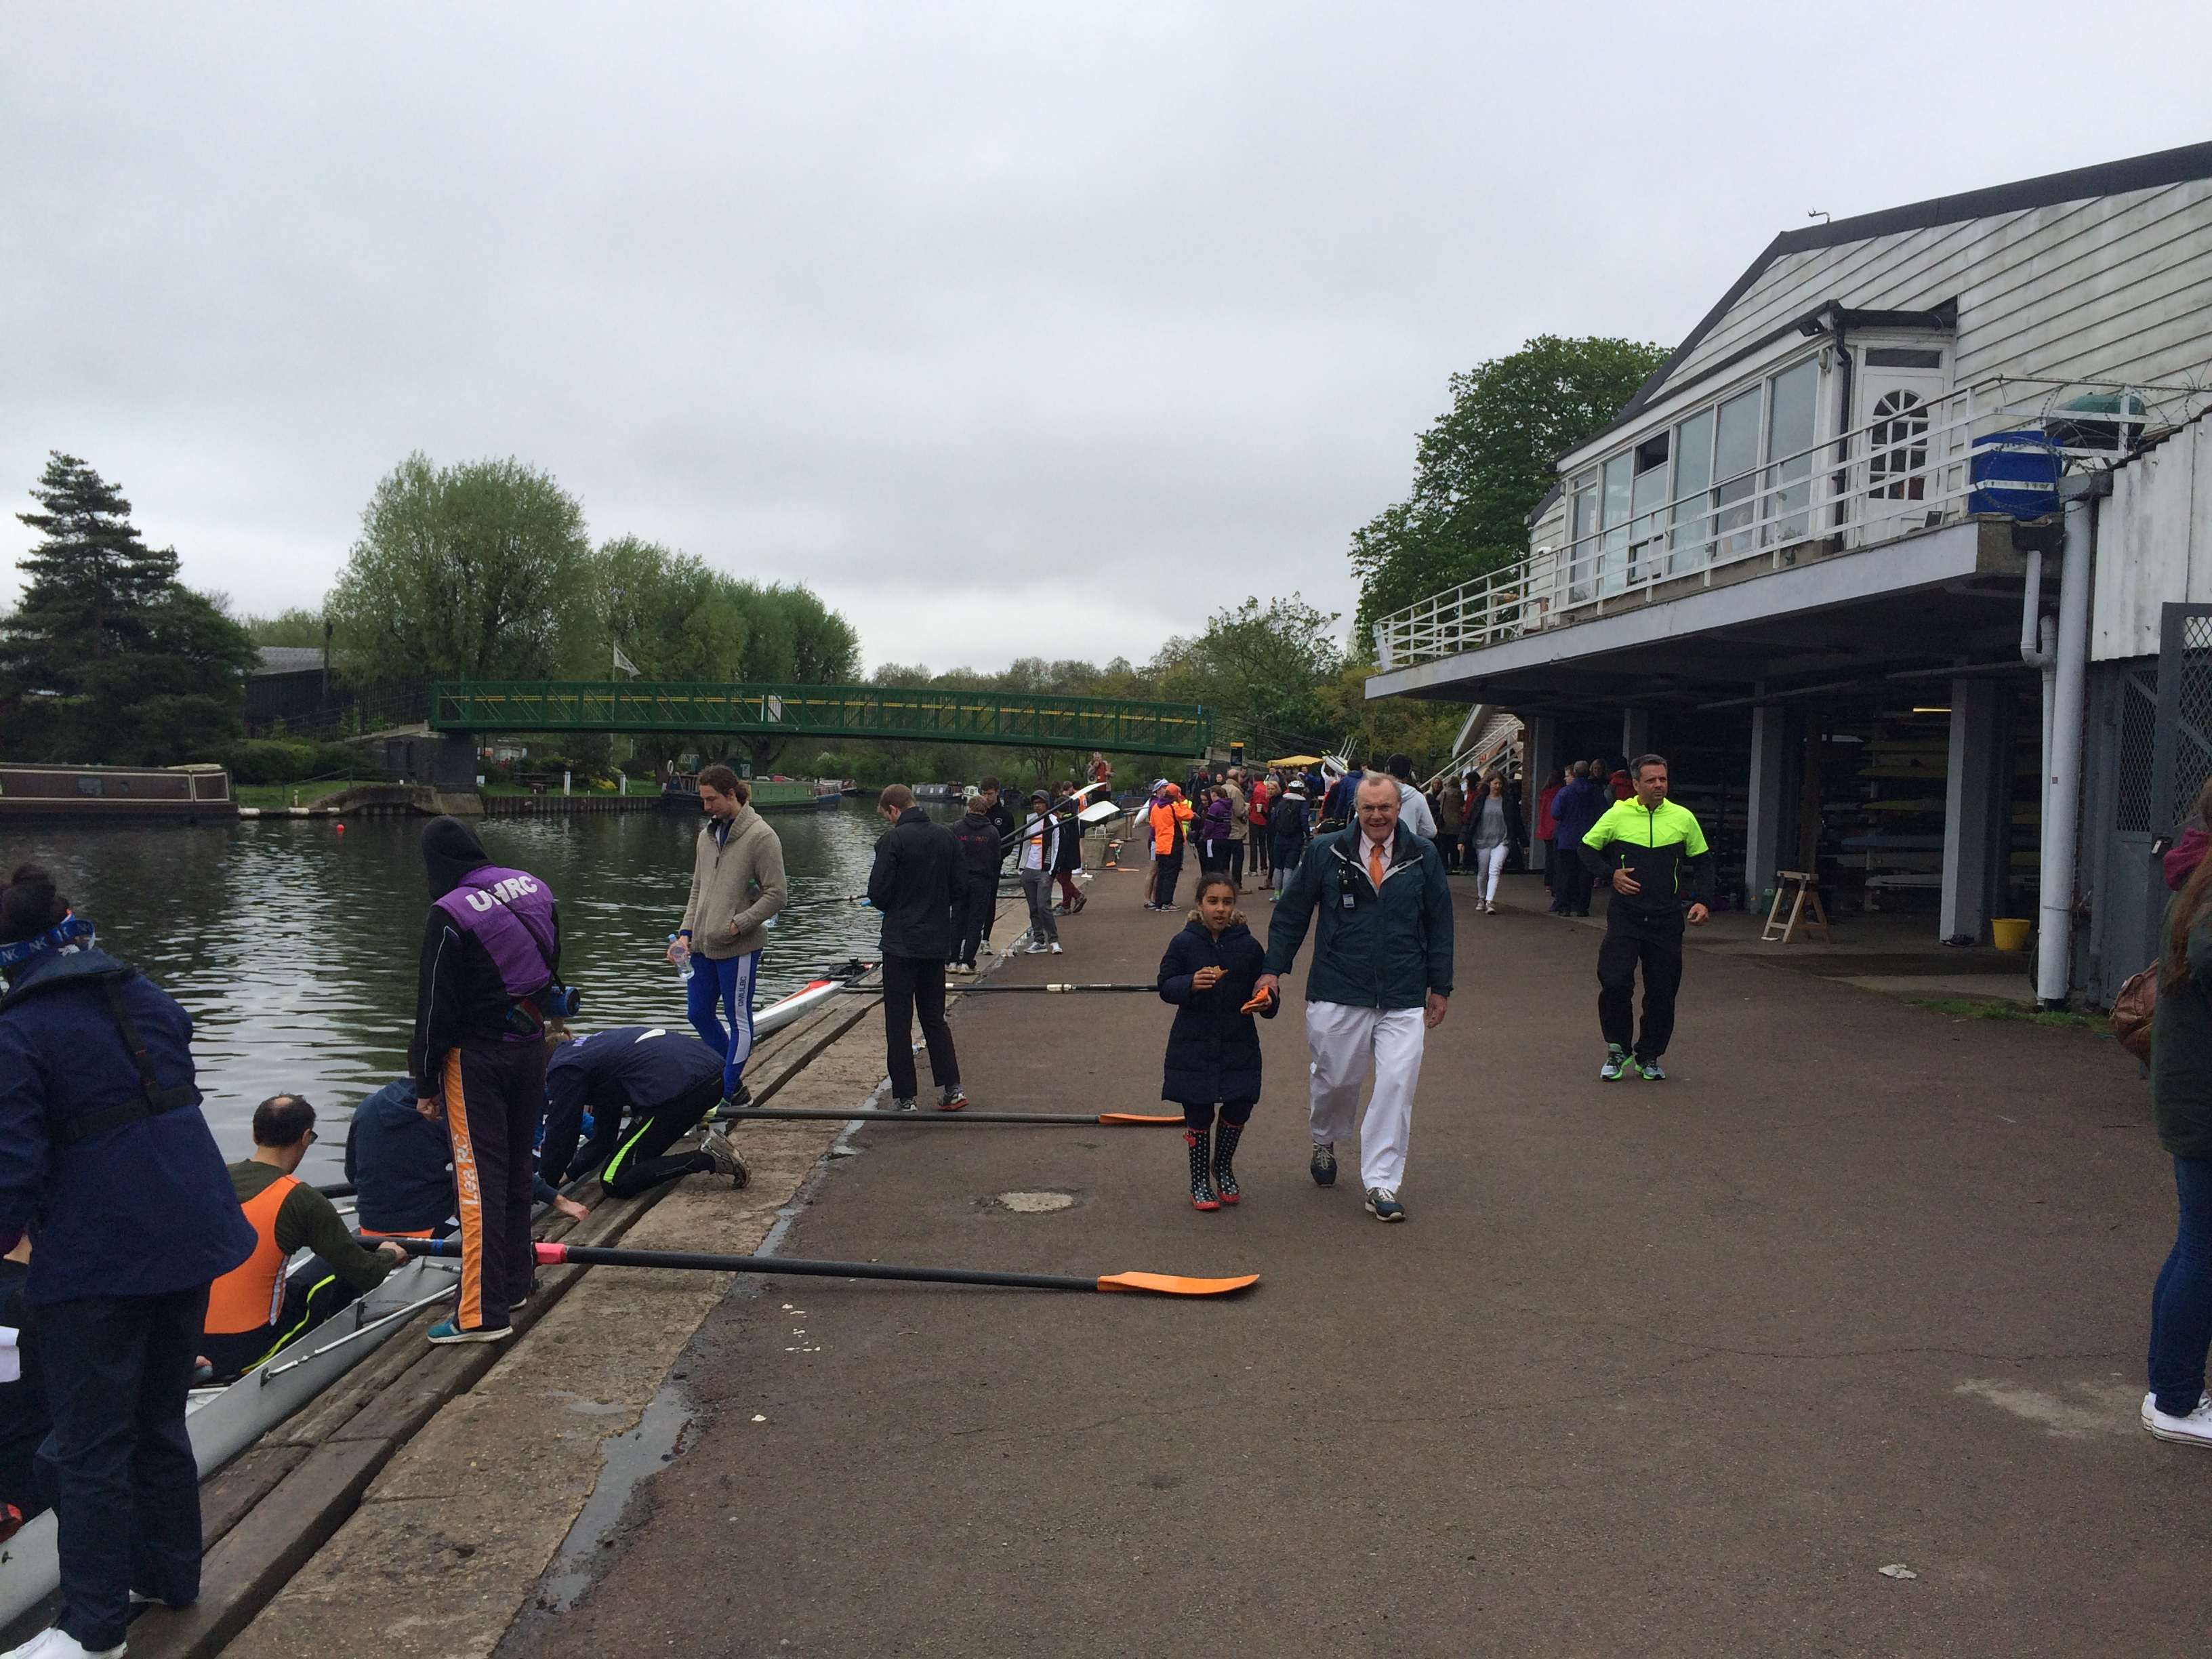 Fred Shearer, Umpire, at the boat house - Lea Regatta 2015